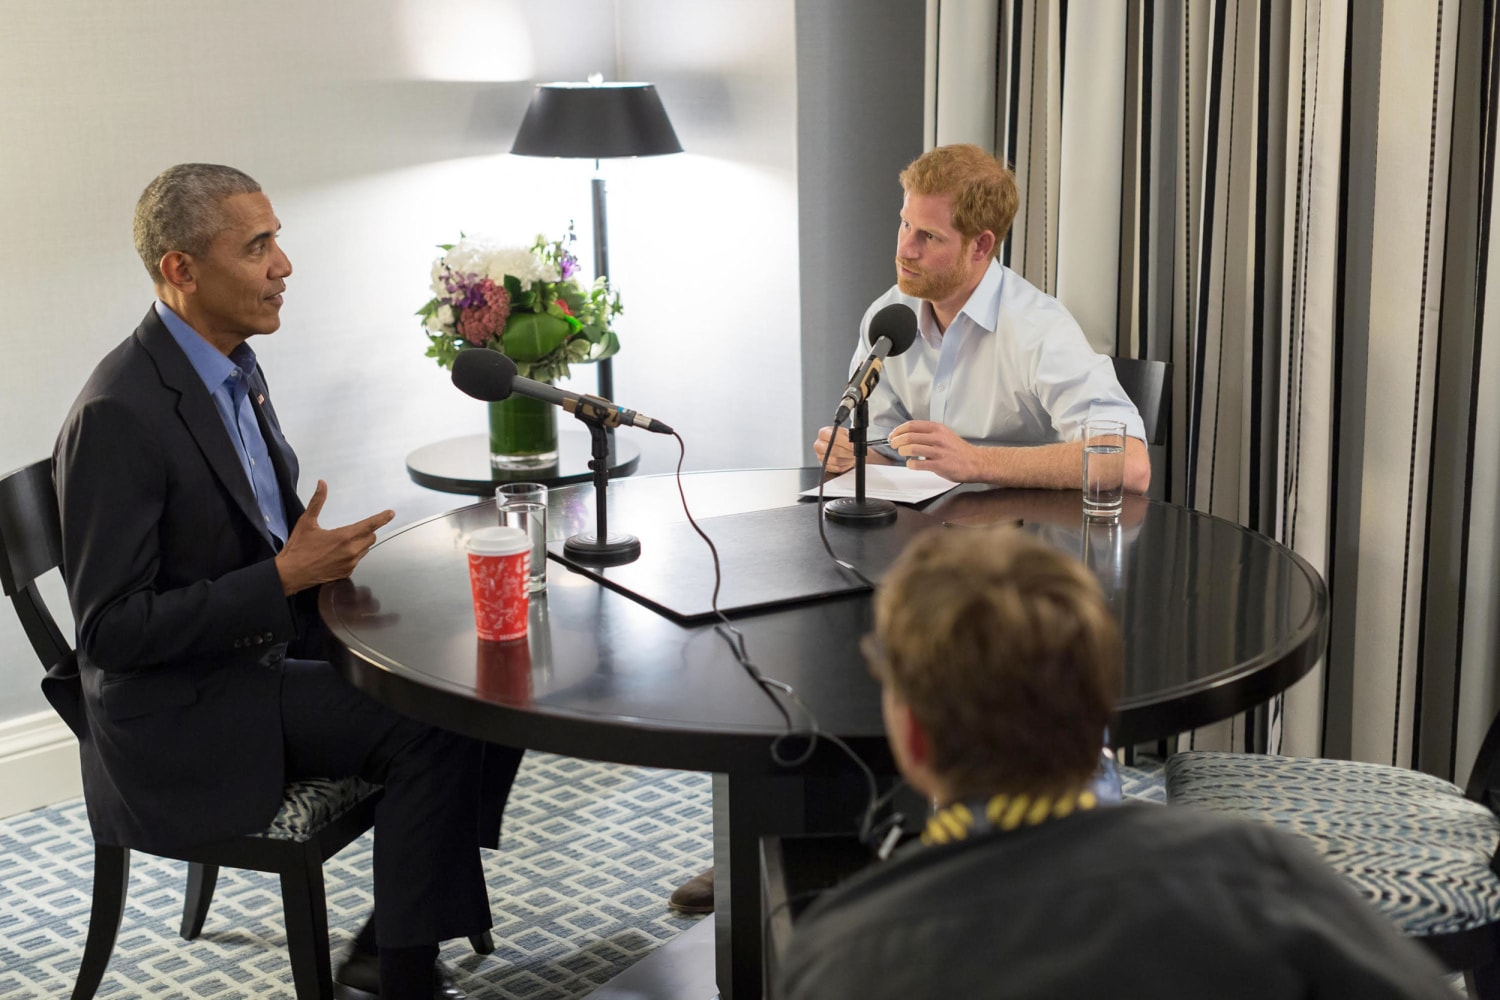 Prince Harry-Barack Obama bromance continues for BBC radio show interview